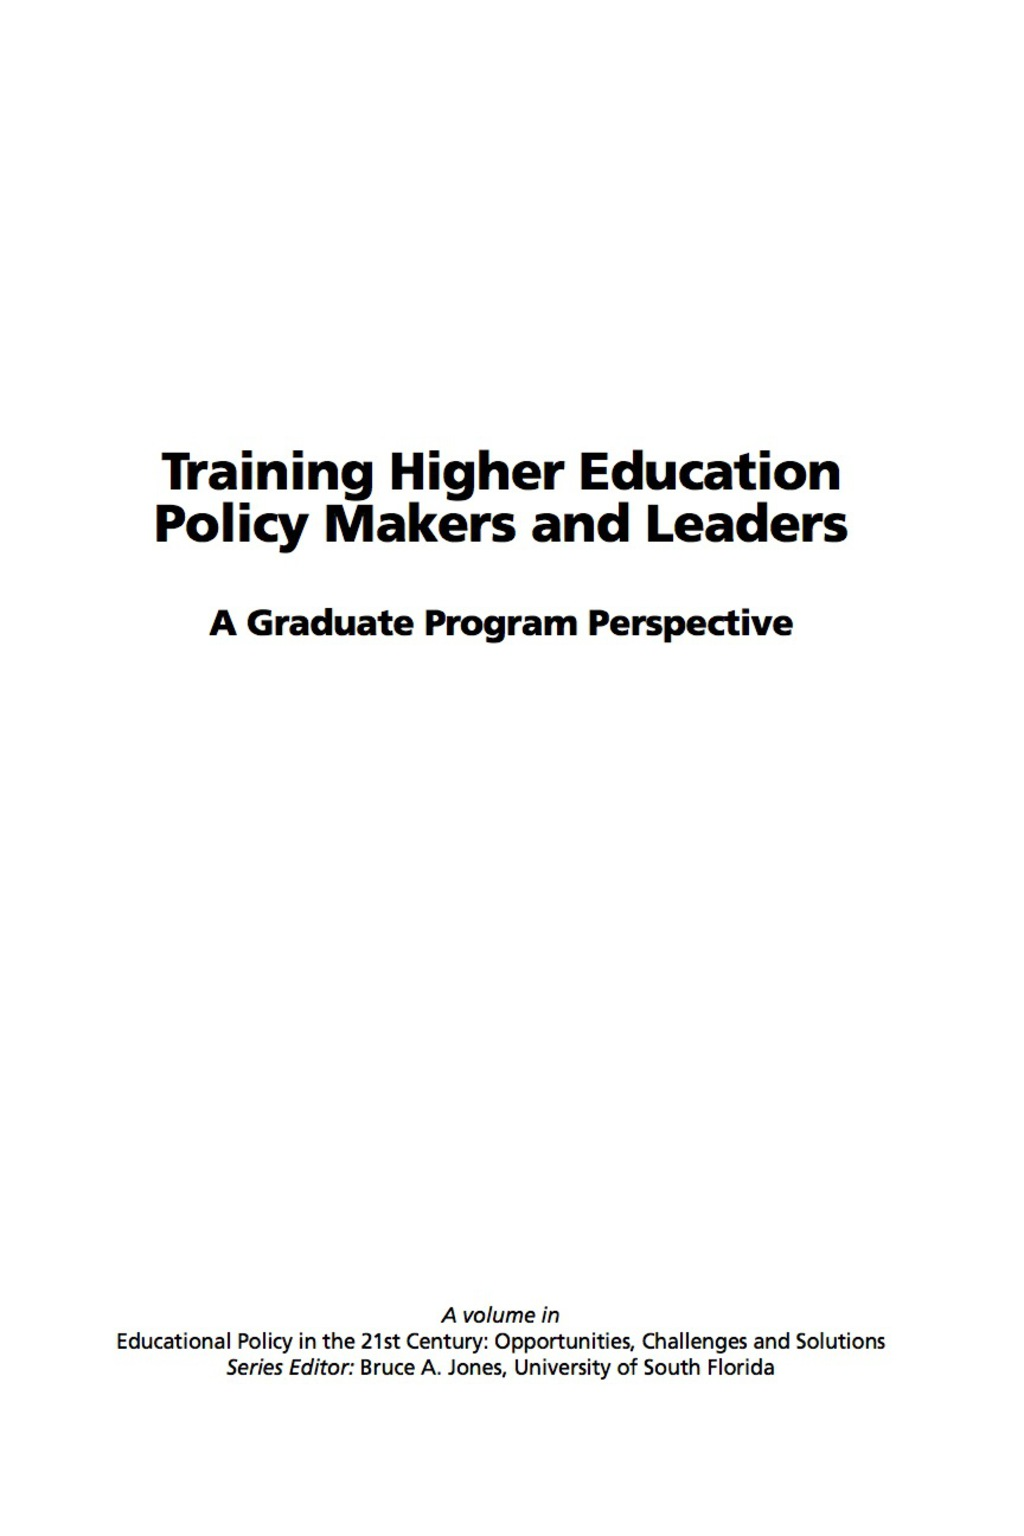 Training Higher Education Policy Makers and Leaders: A Graduate Program Perspective (ebook) eBooks